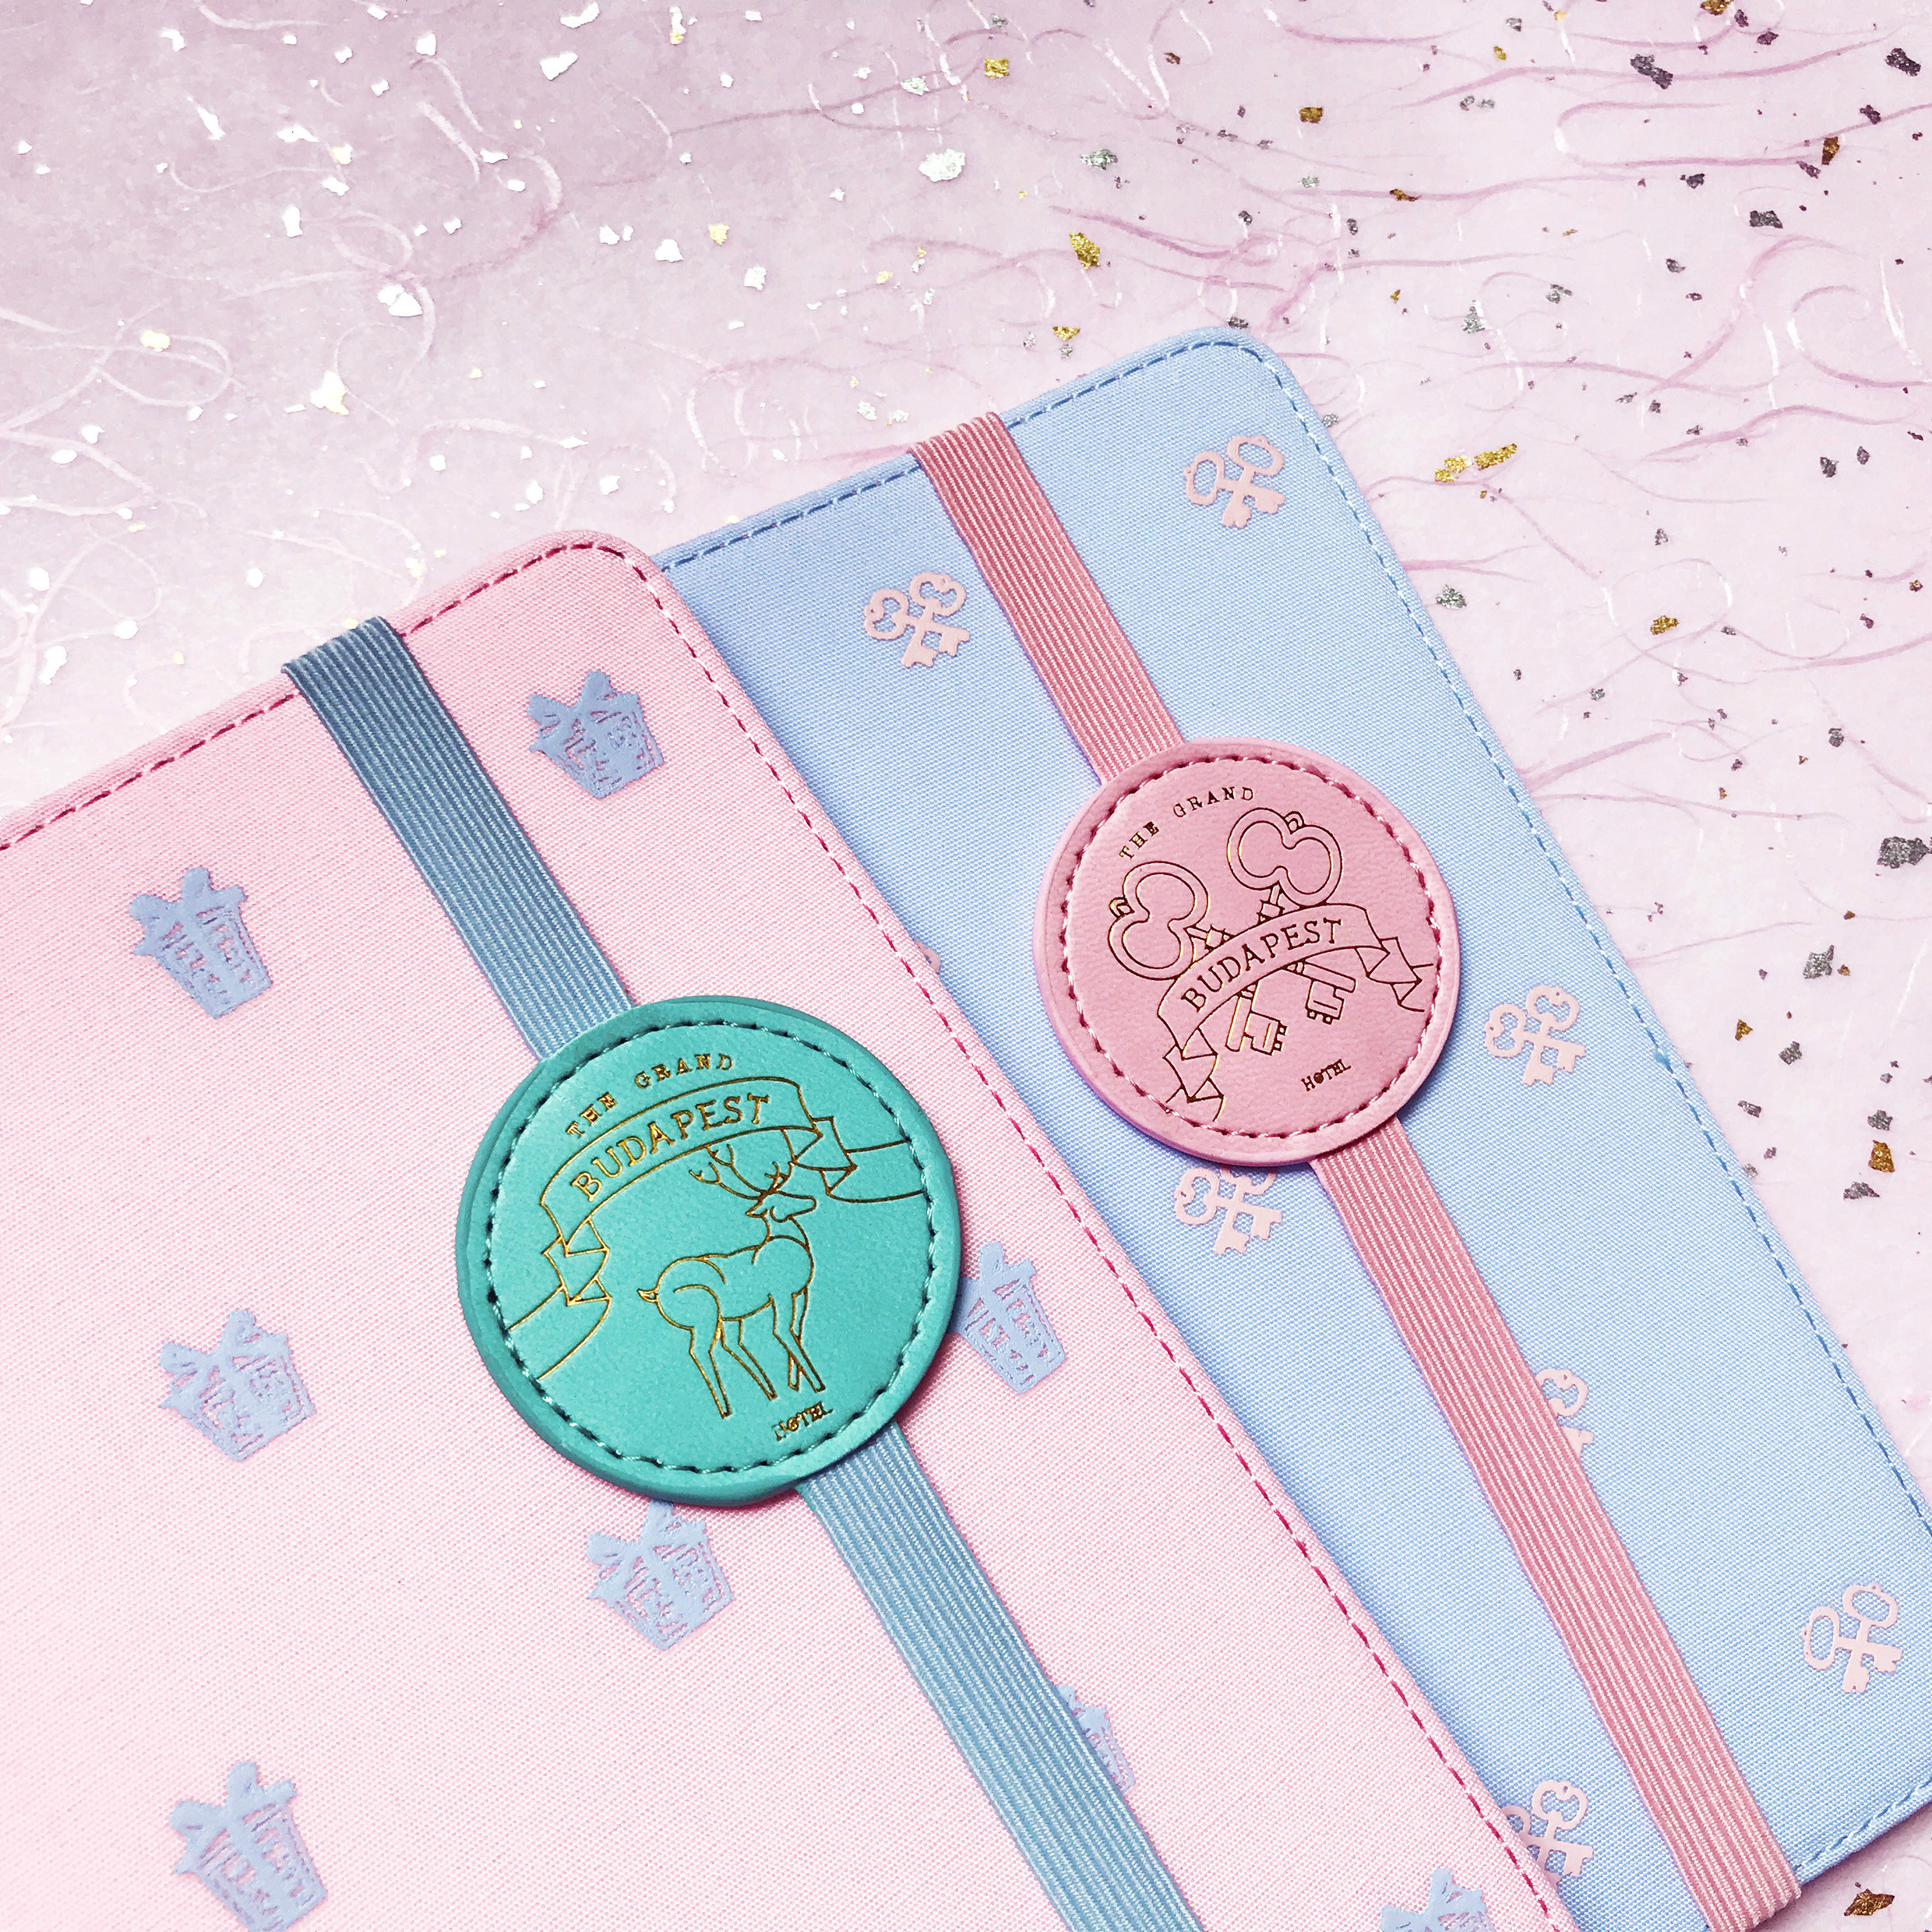 Creative Blue And Pink Budapest Theme Book Band DIY Journal Gift